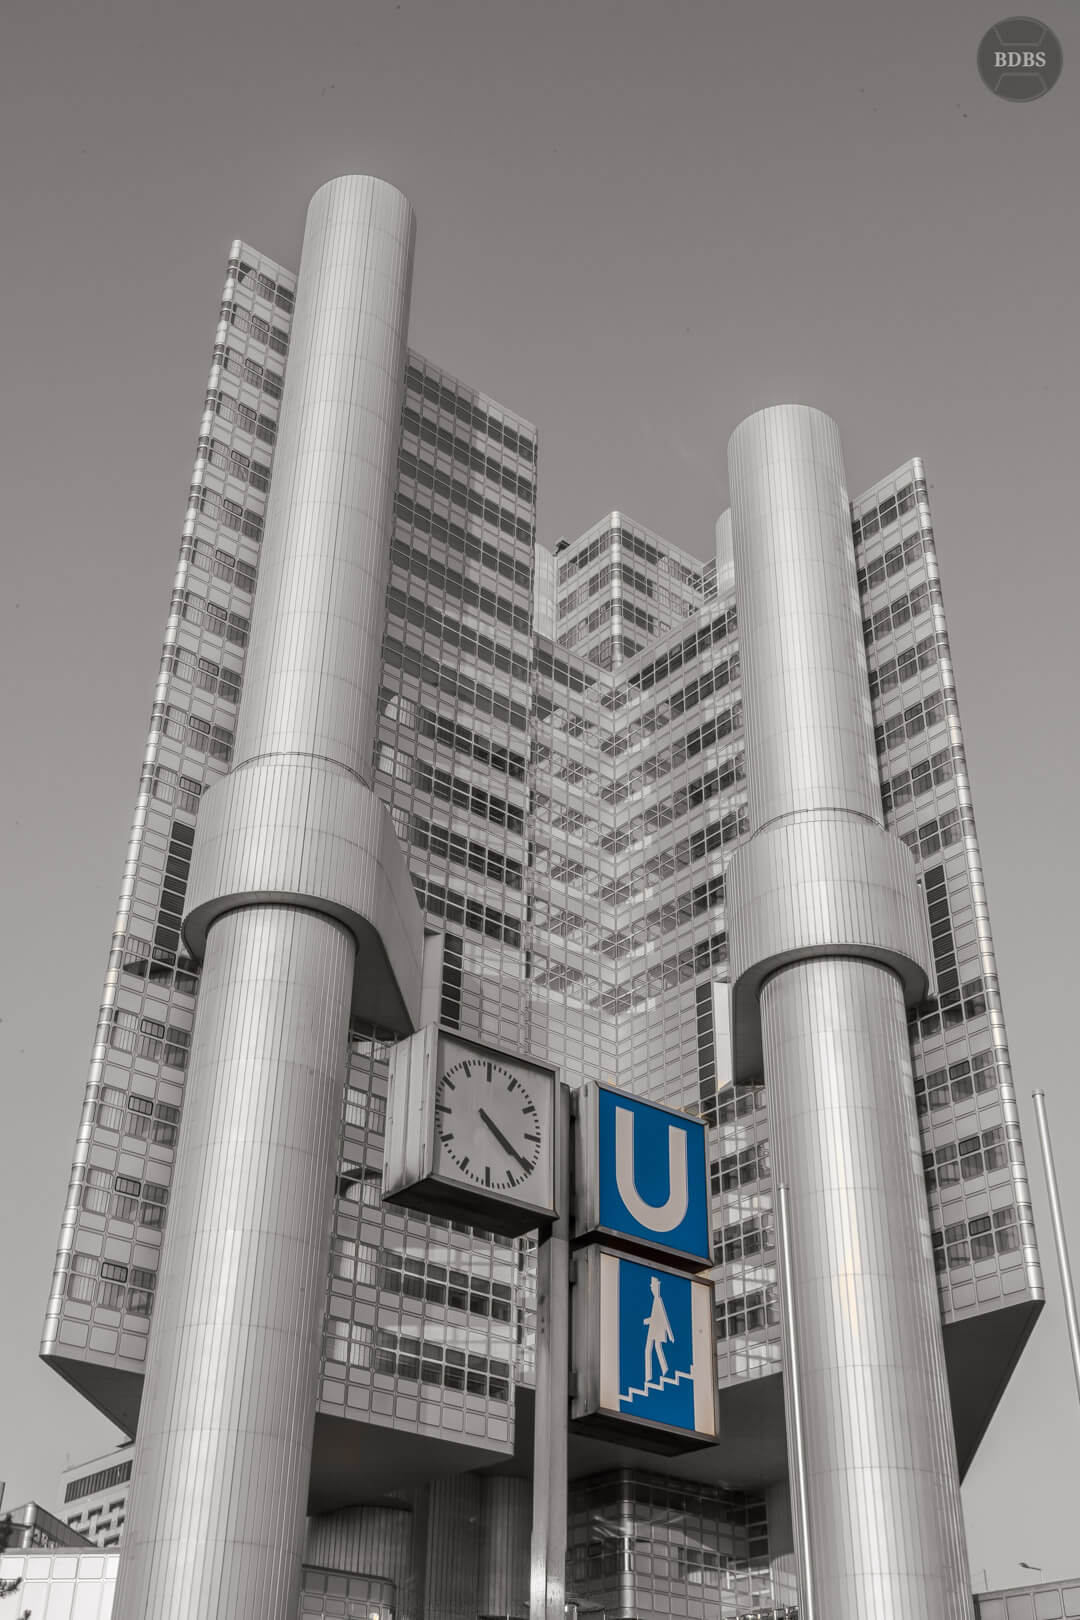 Hypo-Hochhaus HDR (1/125 Sek - f22,0 - 35mm - ISO100)